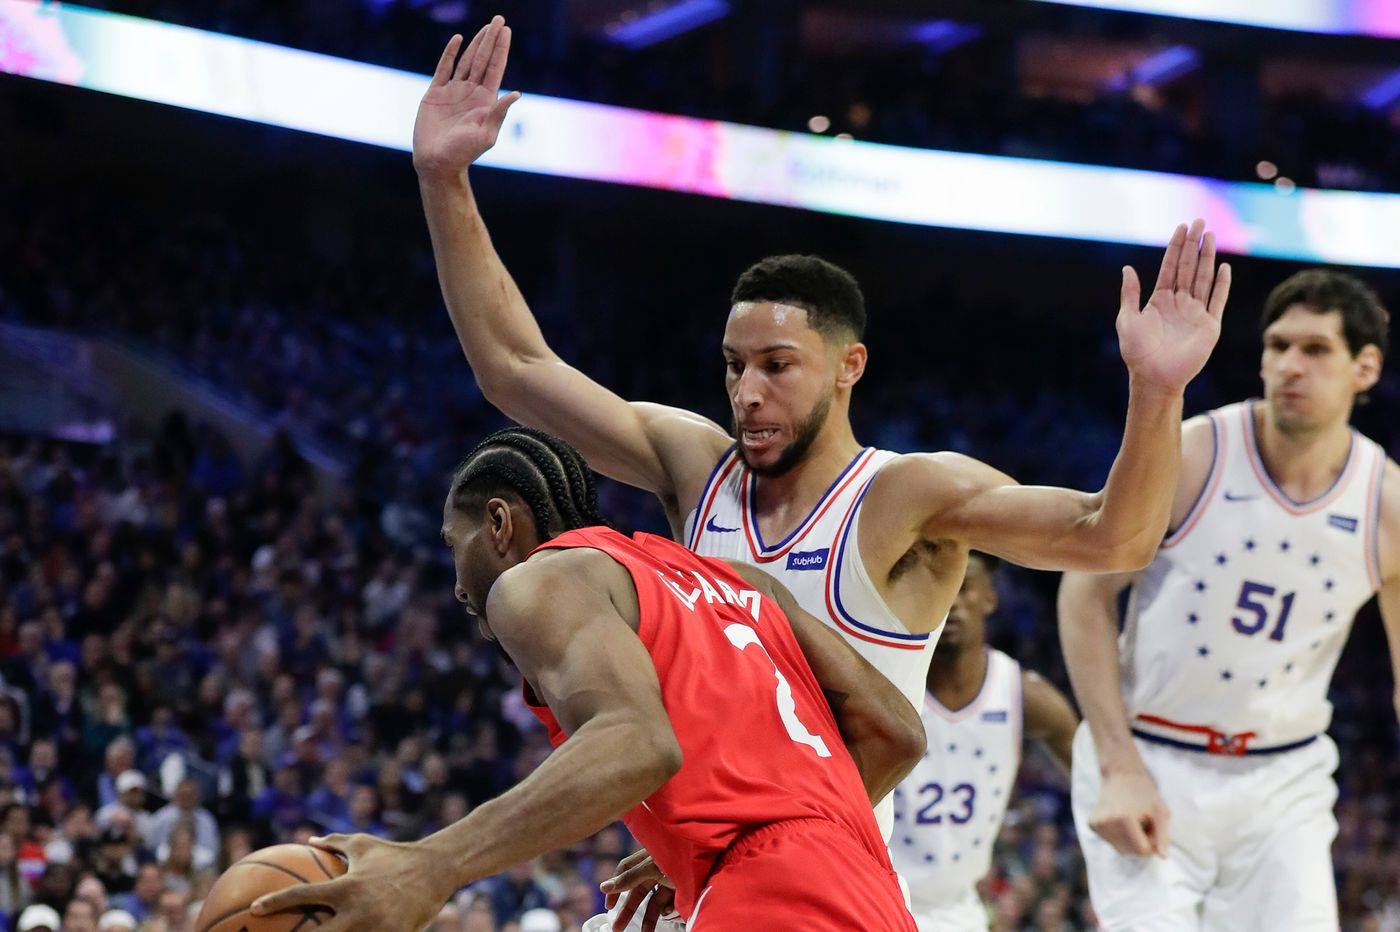 Deciding how to utilize Ben Simmons should be atop the Sixers' to-do list